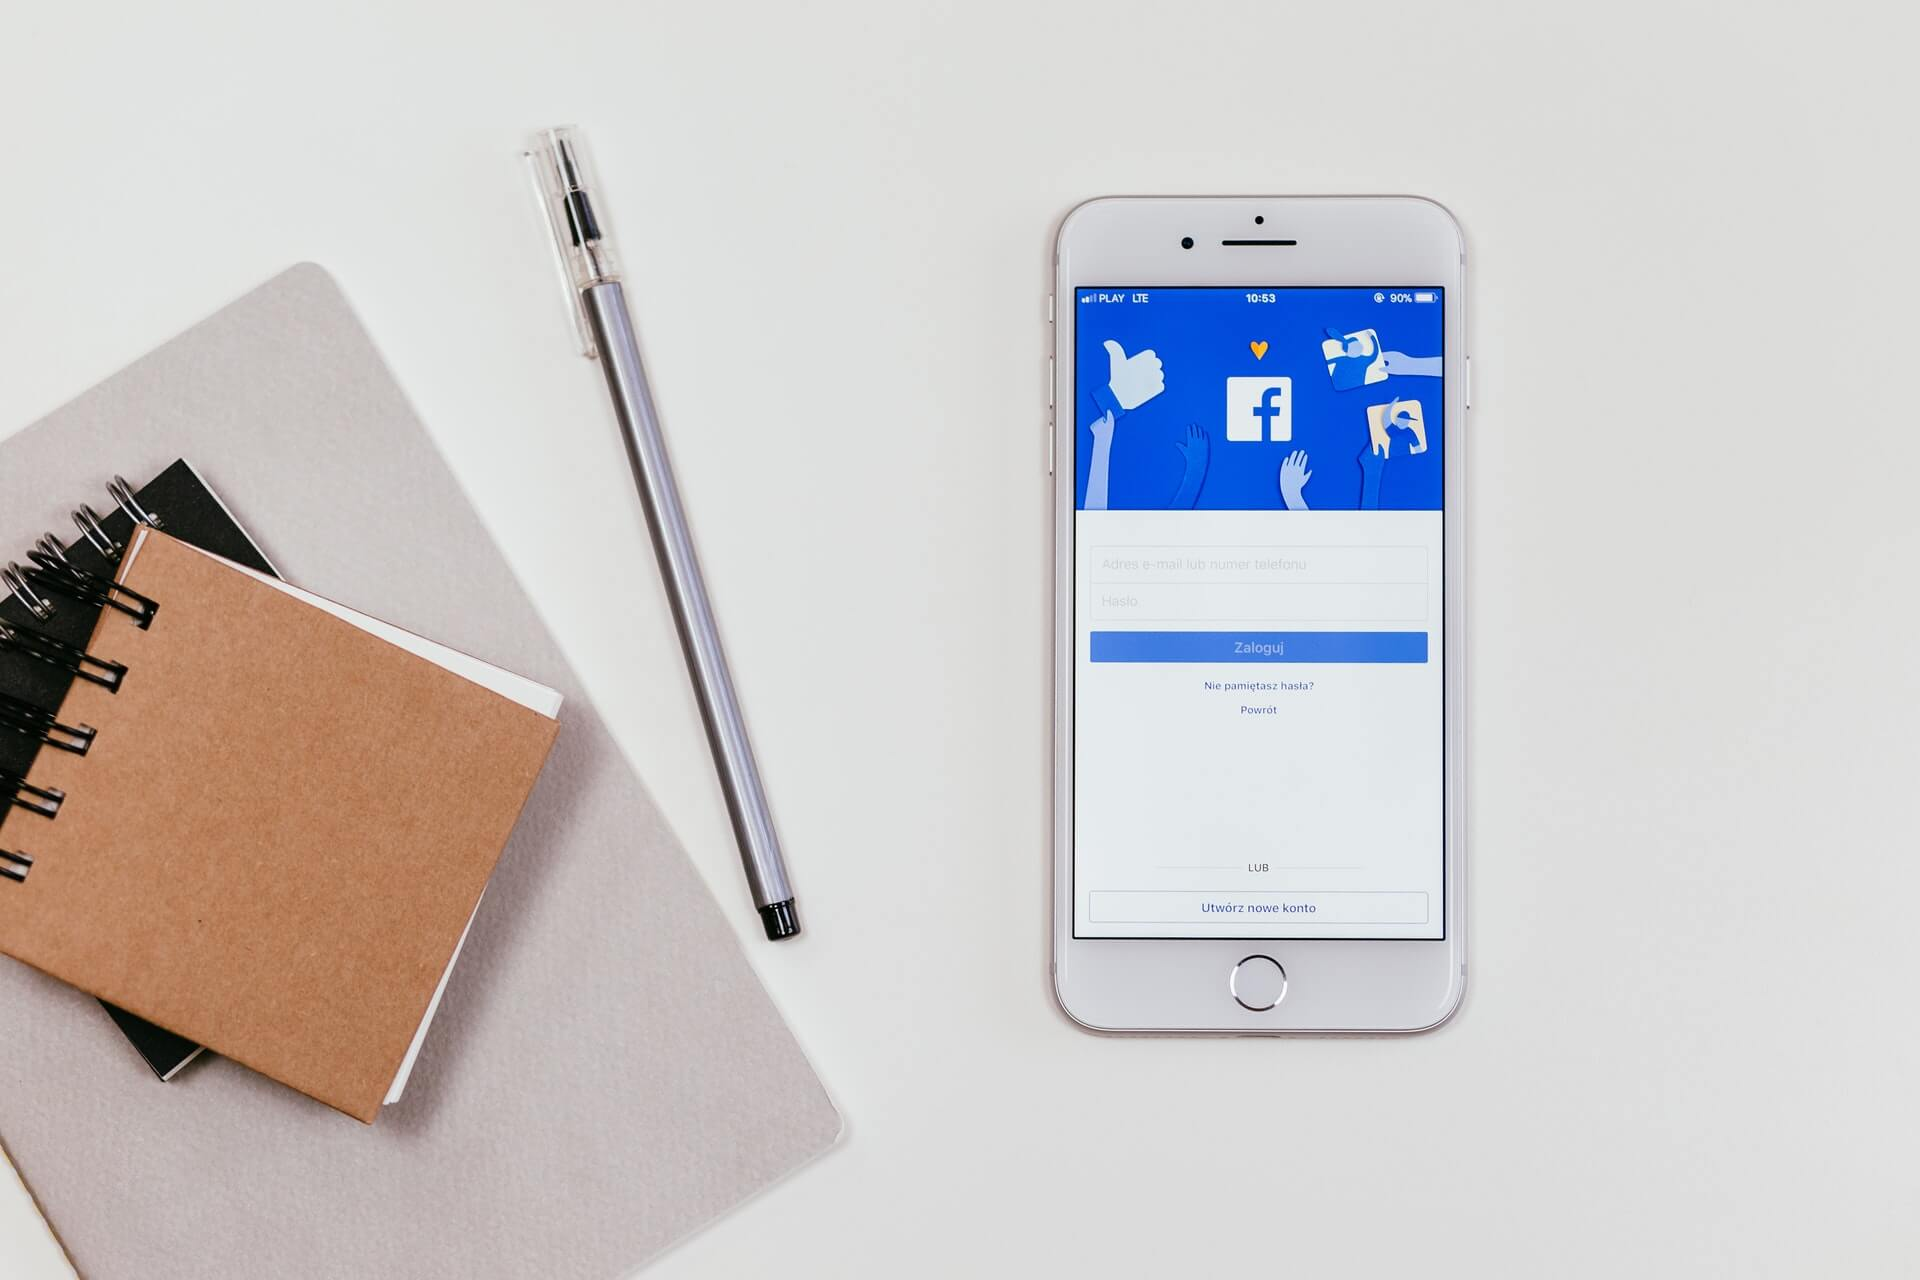 A white iPhone with the Facebook login shown on the screen after downloading the new iOS 14 update.